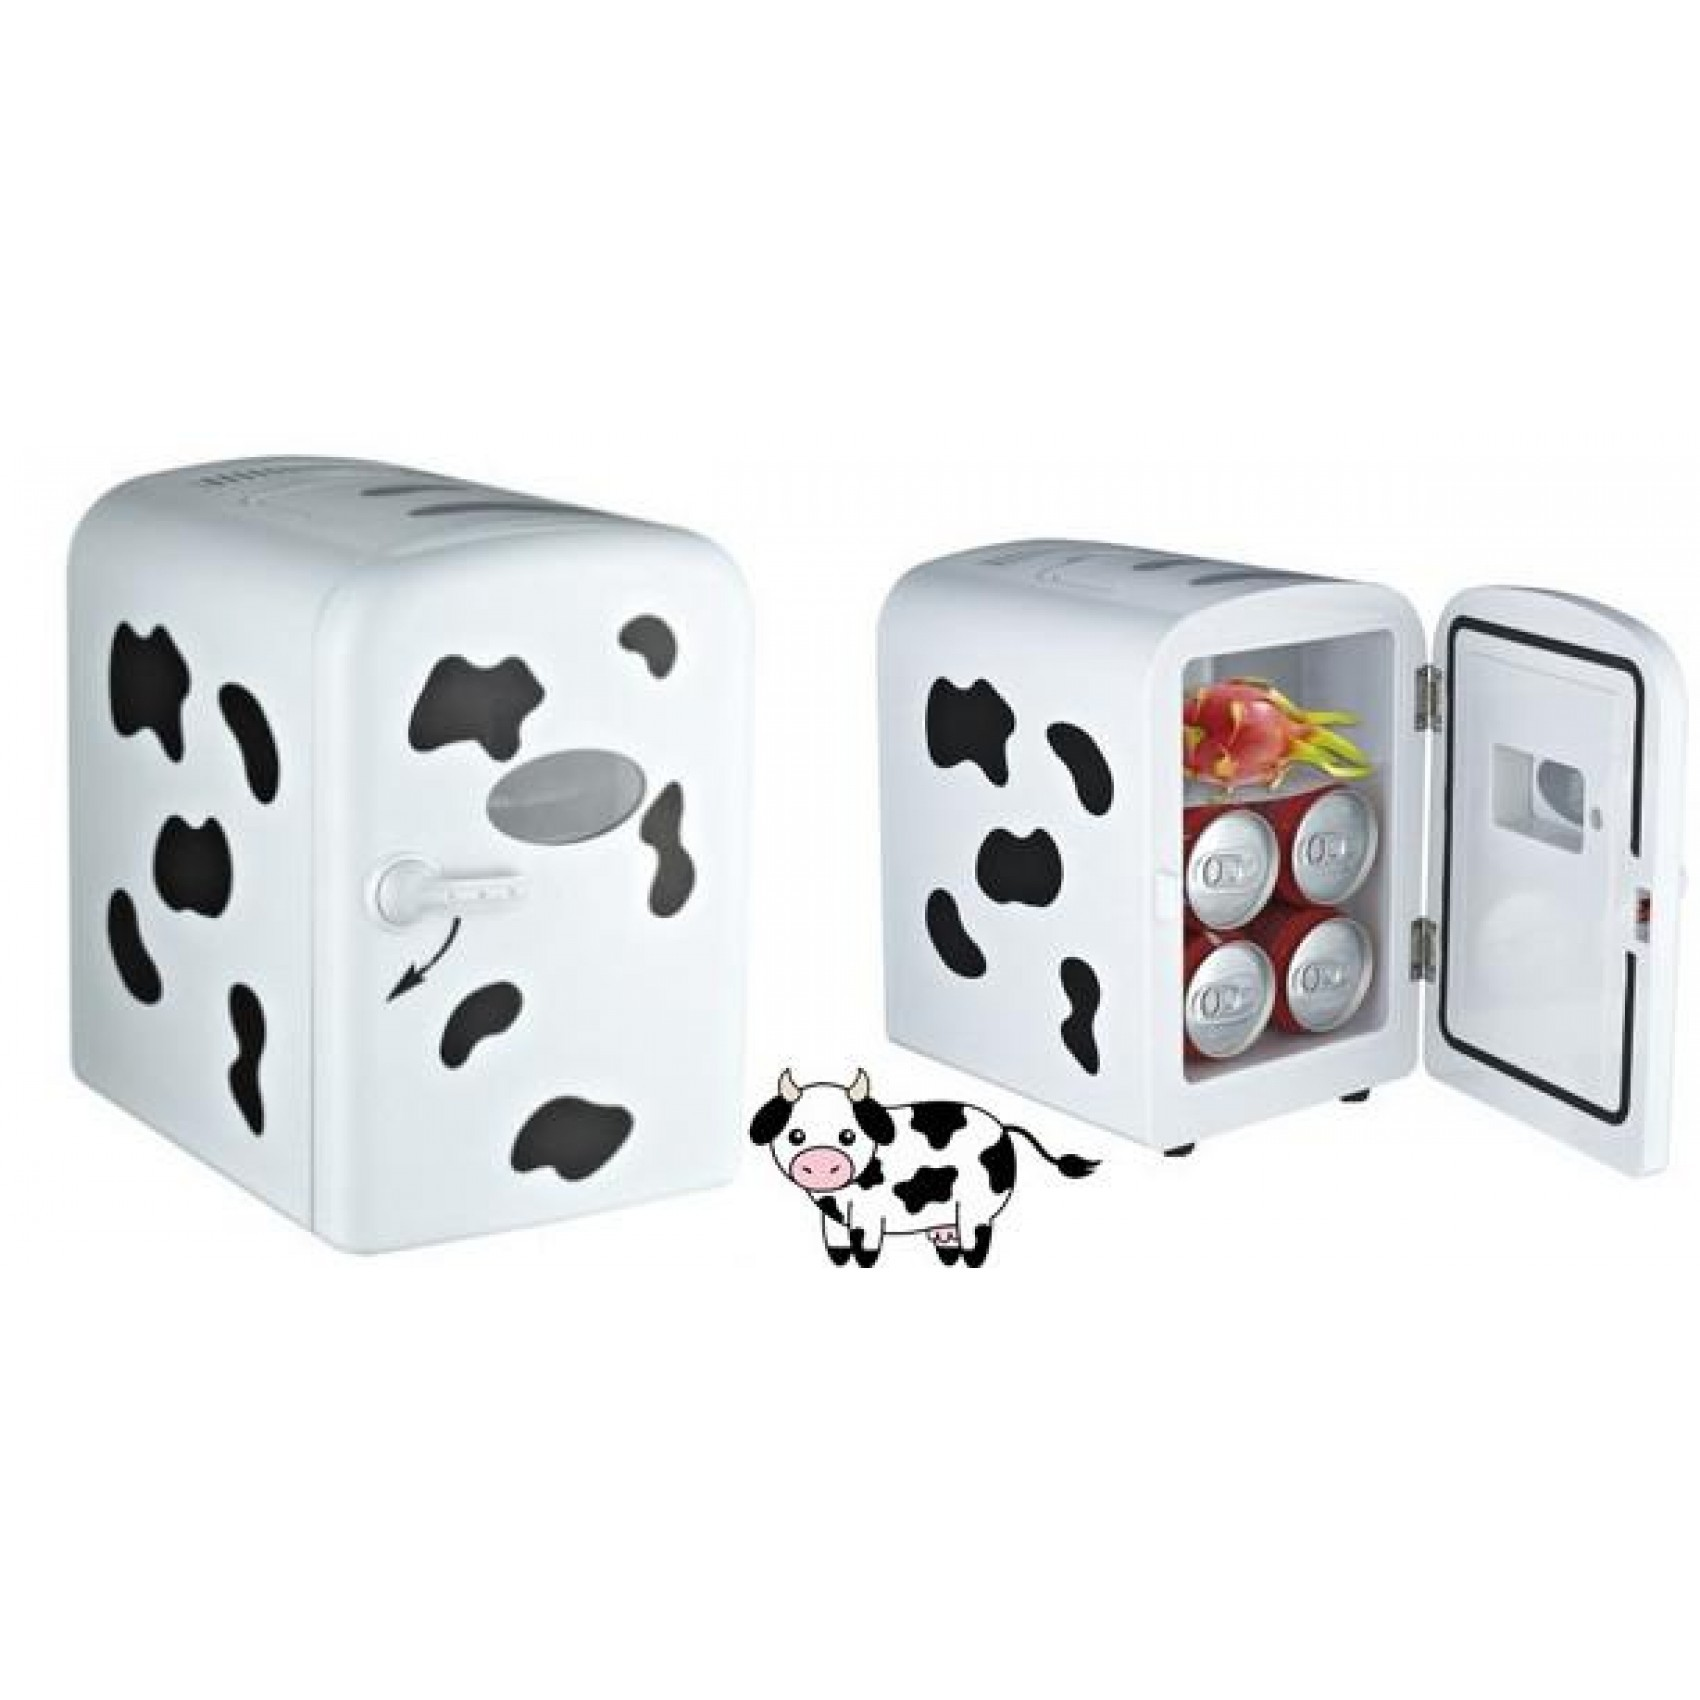 4L Milk Cow Portable Mini Fridge Ref Cooler Warmer For Car Home And Office